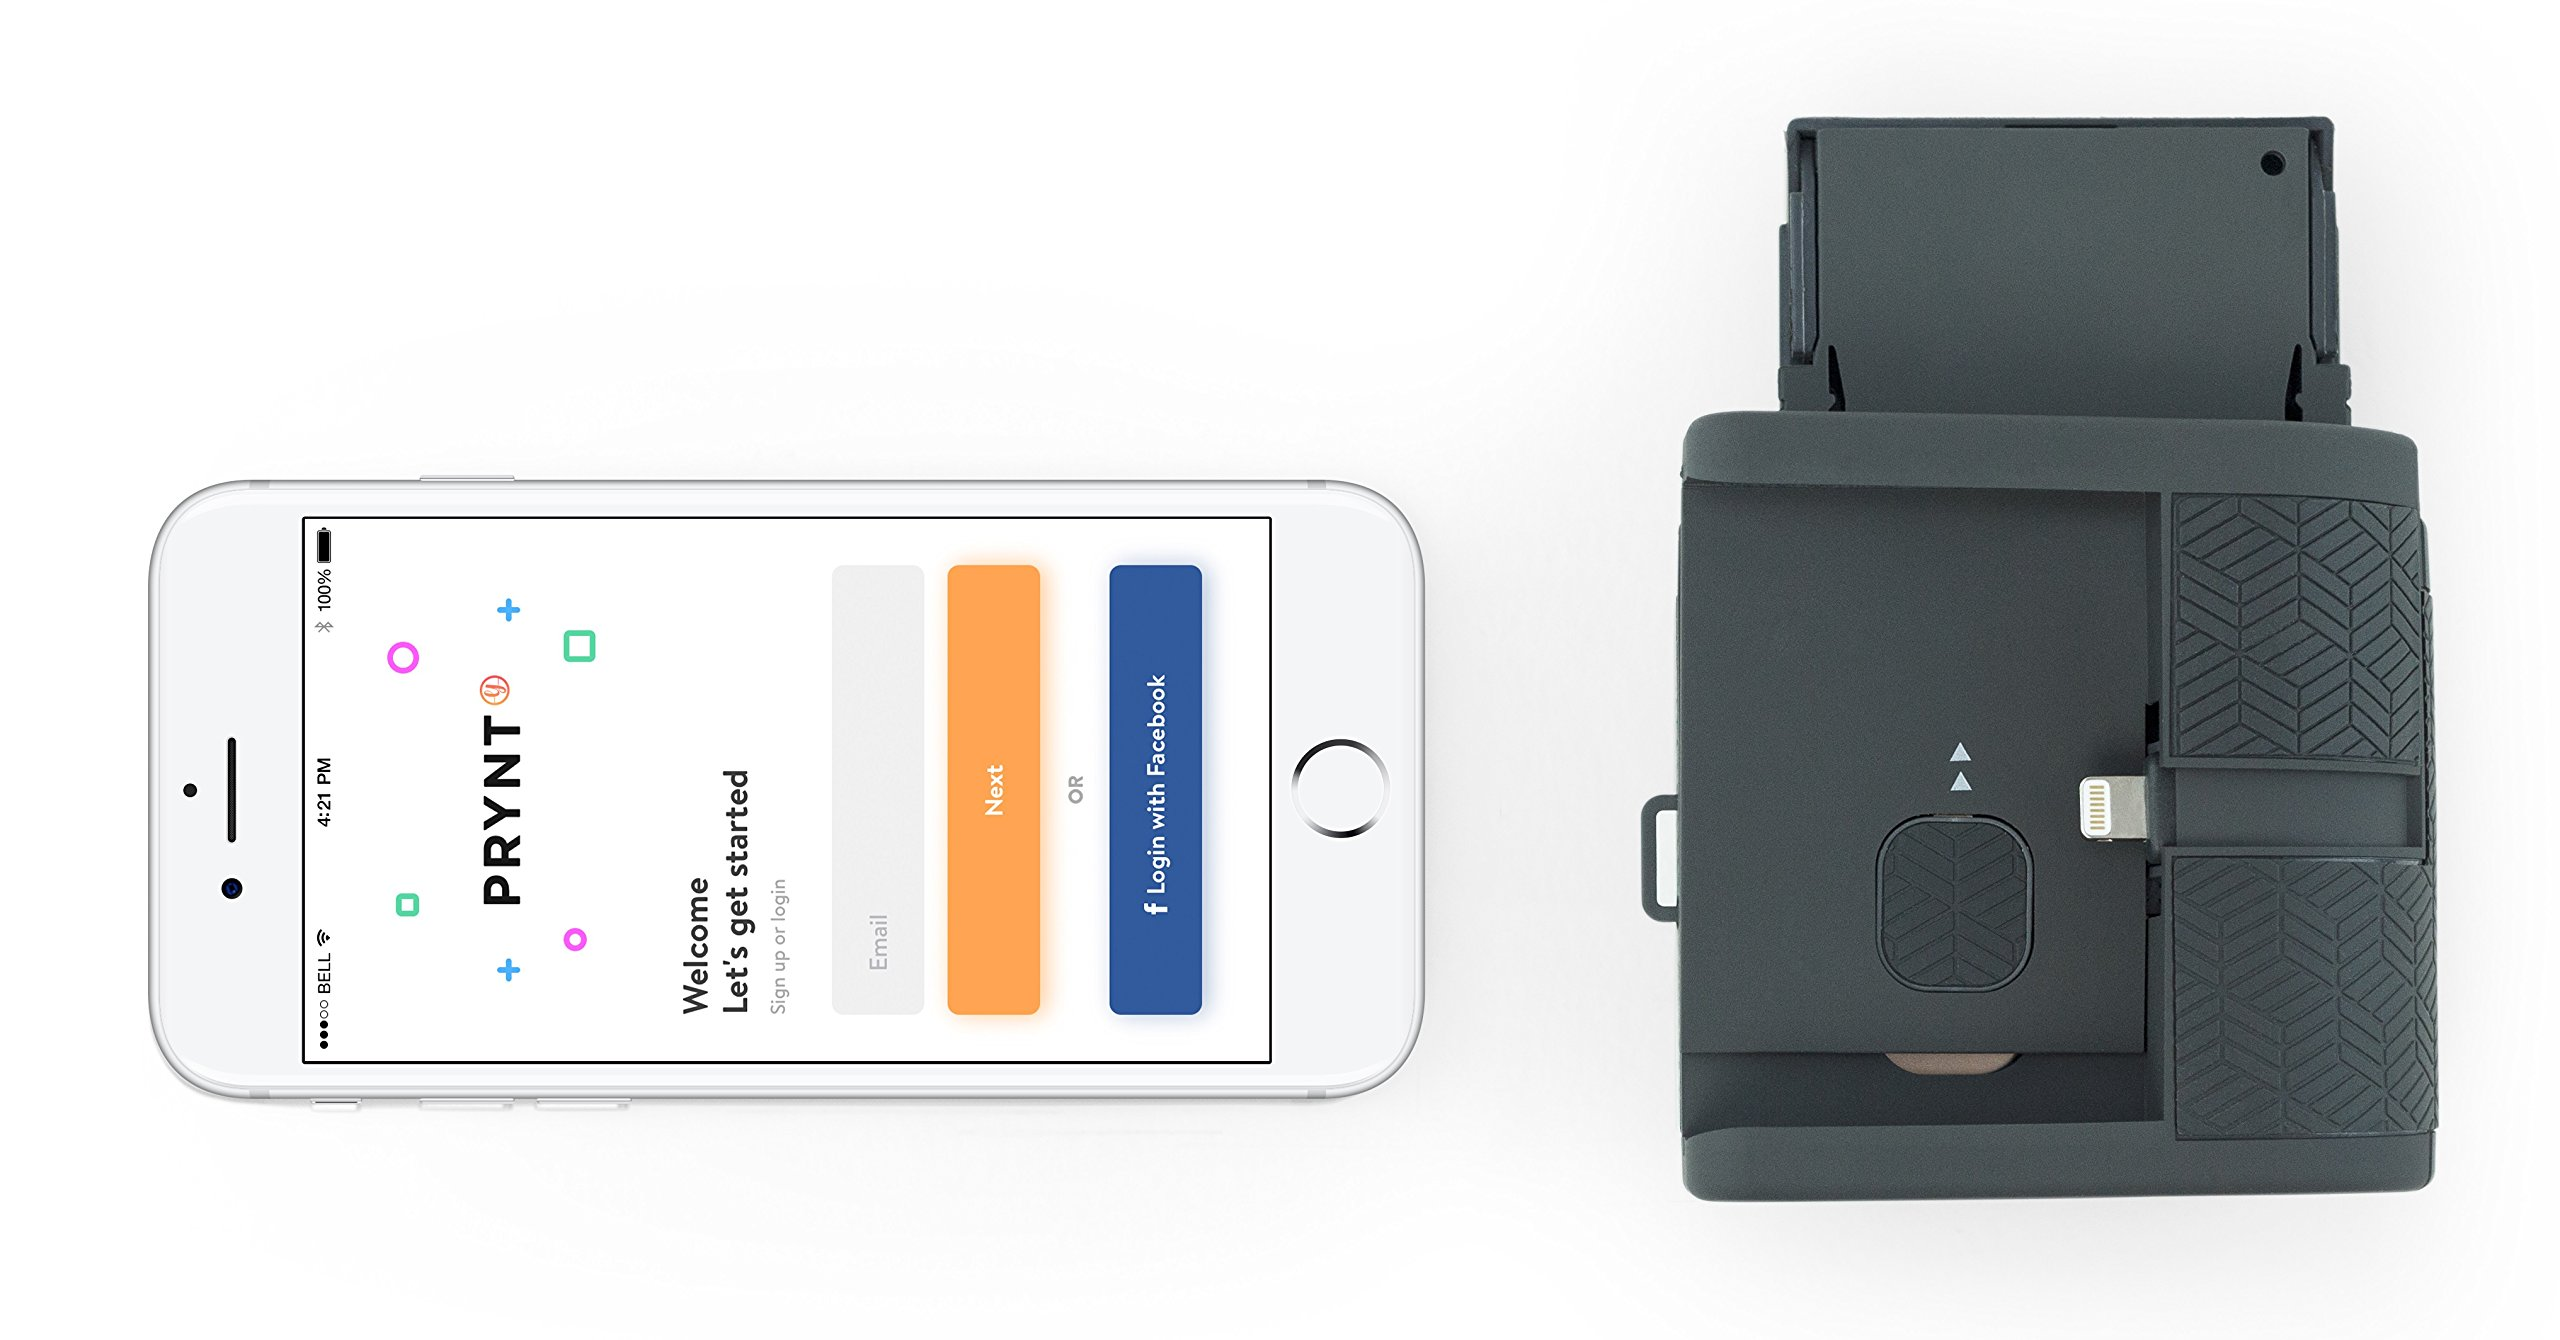 Prynt Pocket, Instant Photo Printer for iPhone - Graphite (PW310001-DG) by Prynt (Image #6)